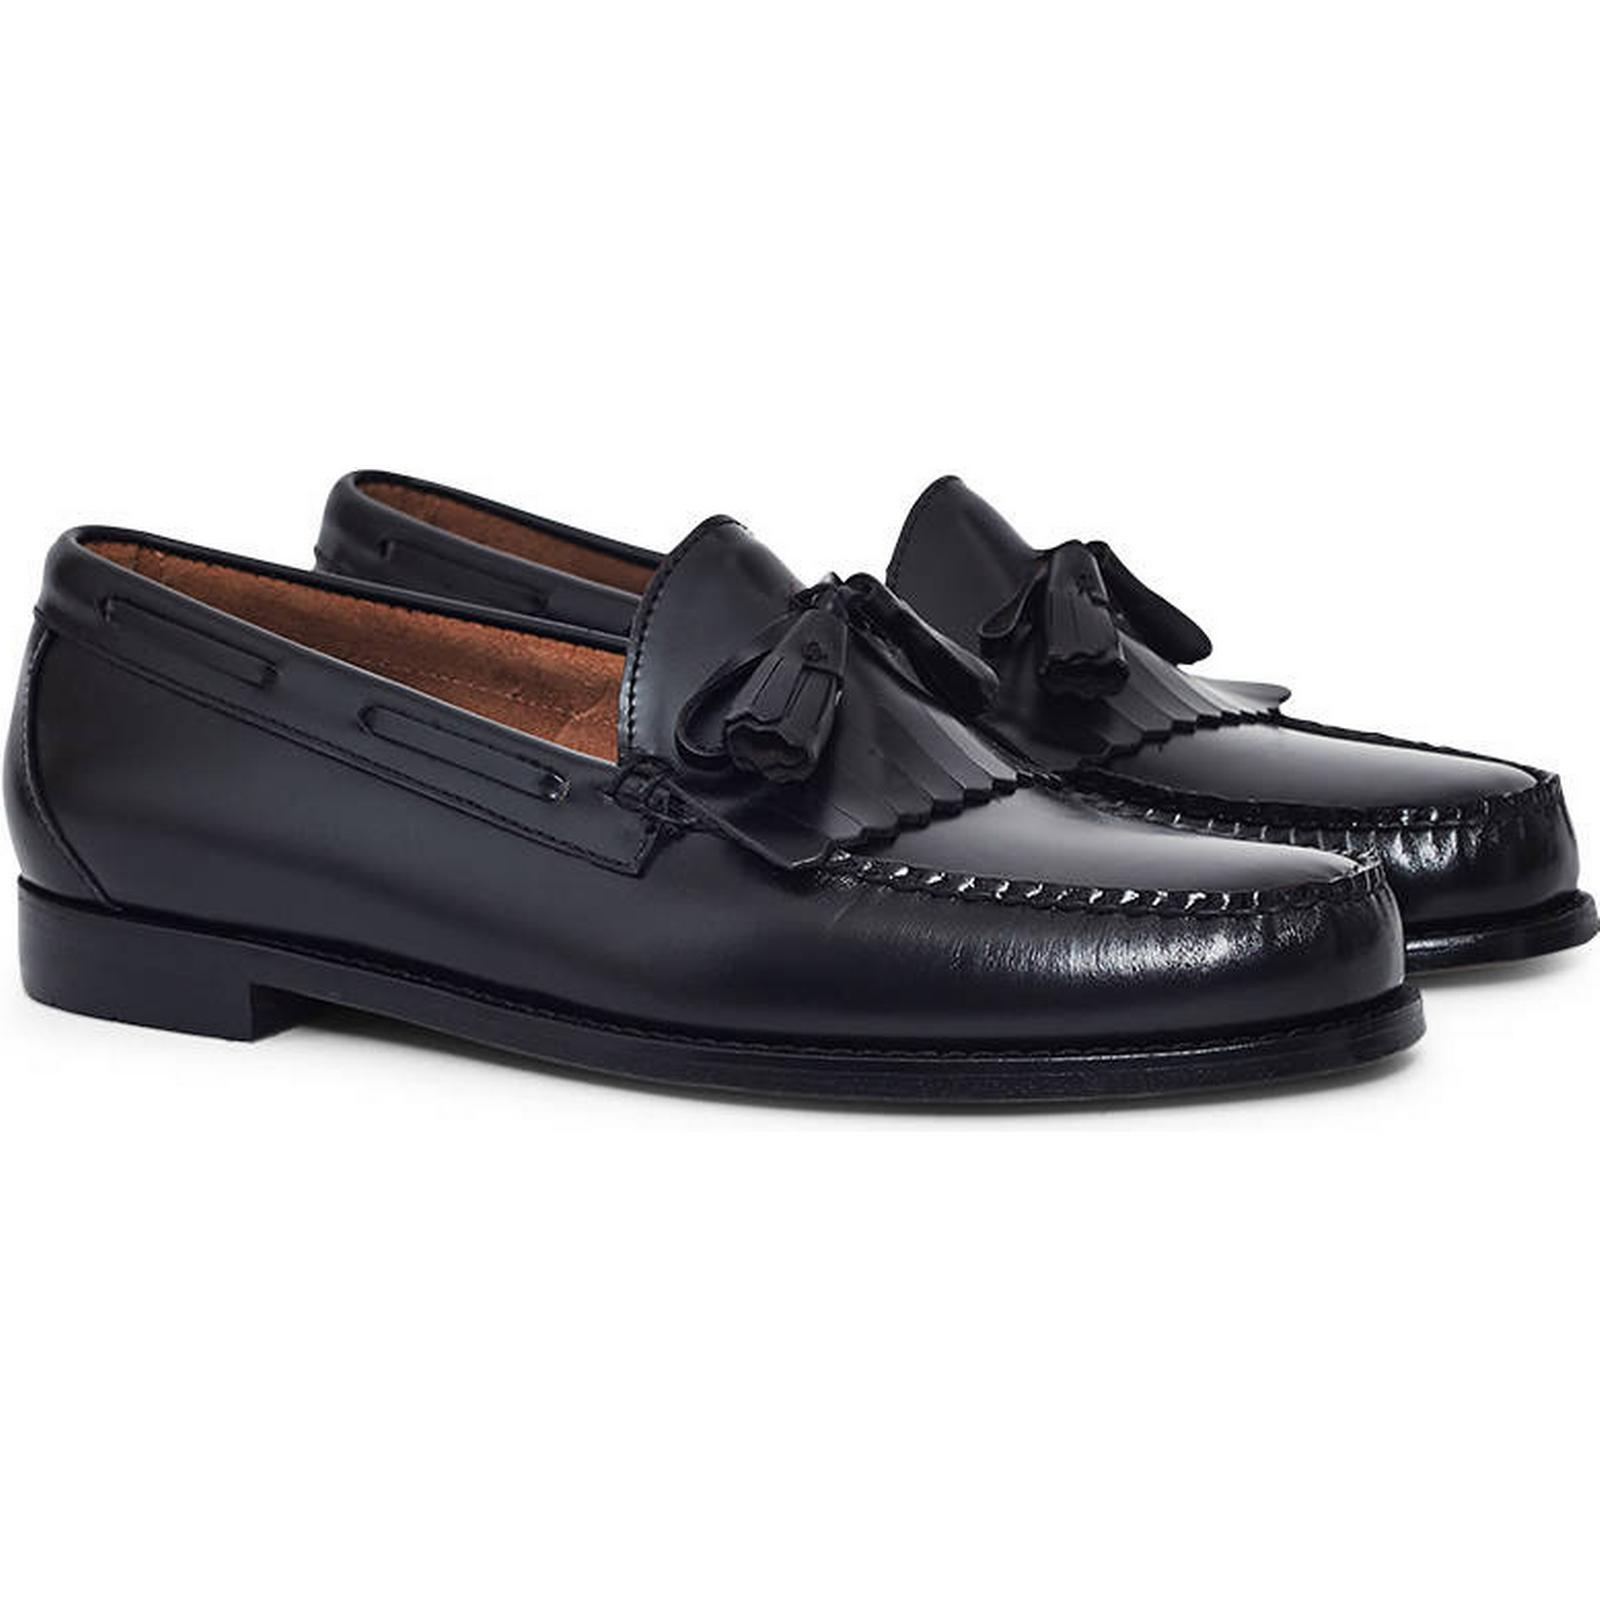 G.H. Co. Bass & Co. G.H. Weejuns Tassle Loafers Black bb0aef